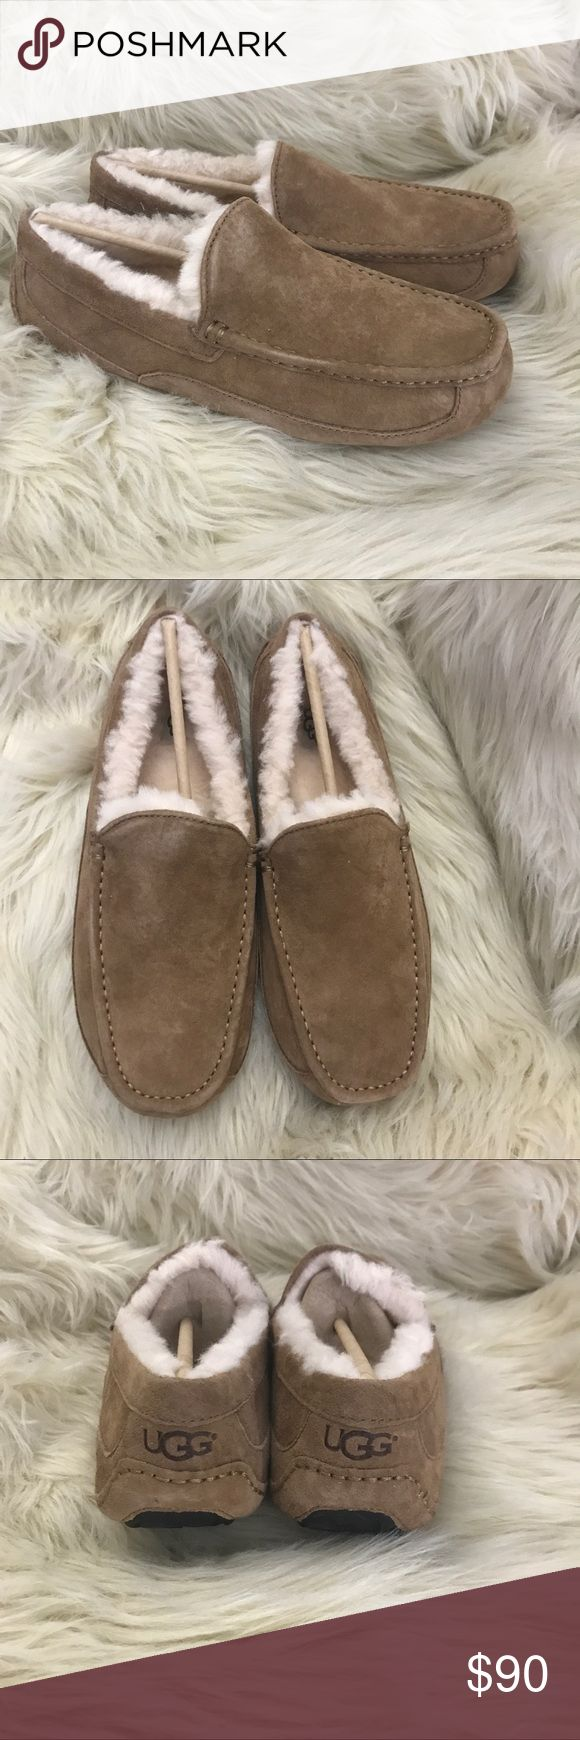 Men's UGG ascot suede sheepskin slippers ✨BNWOB!✨  ✅Sizing: TRUE TO SIZE  💎Never worn or used!💎   🛍2+ BUNDLE = 💰SAVINGS!  ‼️= PRICE FIRM!   💯AUTHENTIC BRANDS, ALWAYS!  ✈️ SUPER FAST SHIPPING!   🖲 USE THE OFFER BUTTON TO NEGOTIATE!  ❓ Questions? Just comment! ❤️  🤗❤✌🏼HAPPY POSHING!✌🏼❤️🤗 UGG Shoes Loafers & Slip-Ons